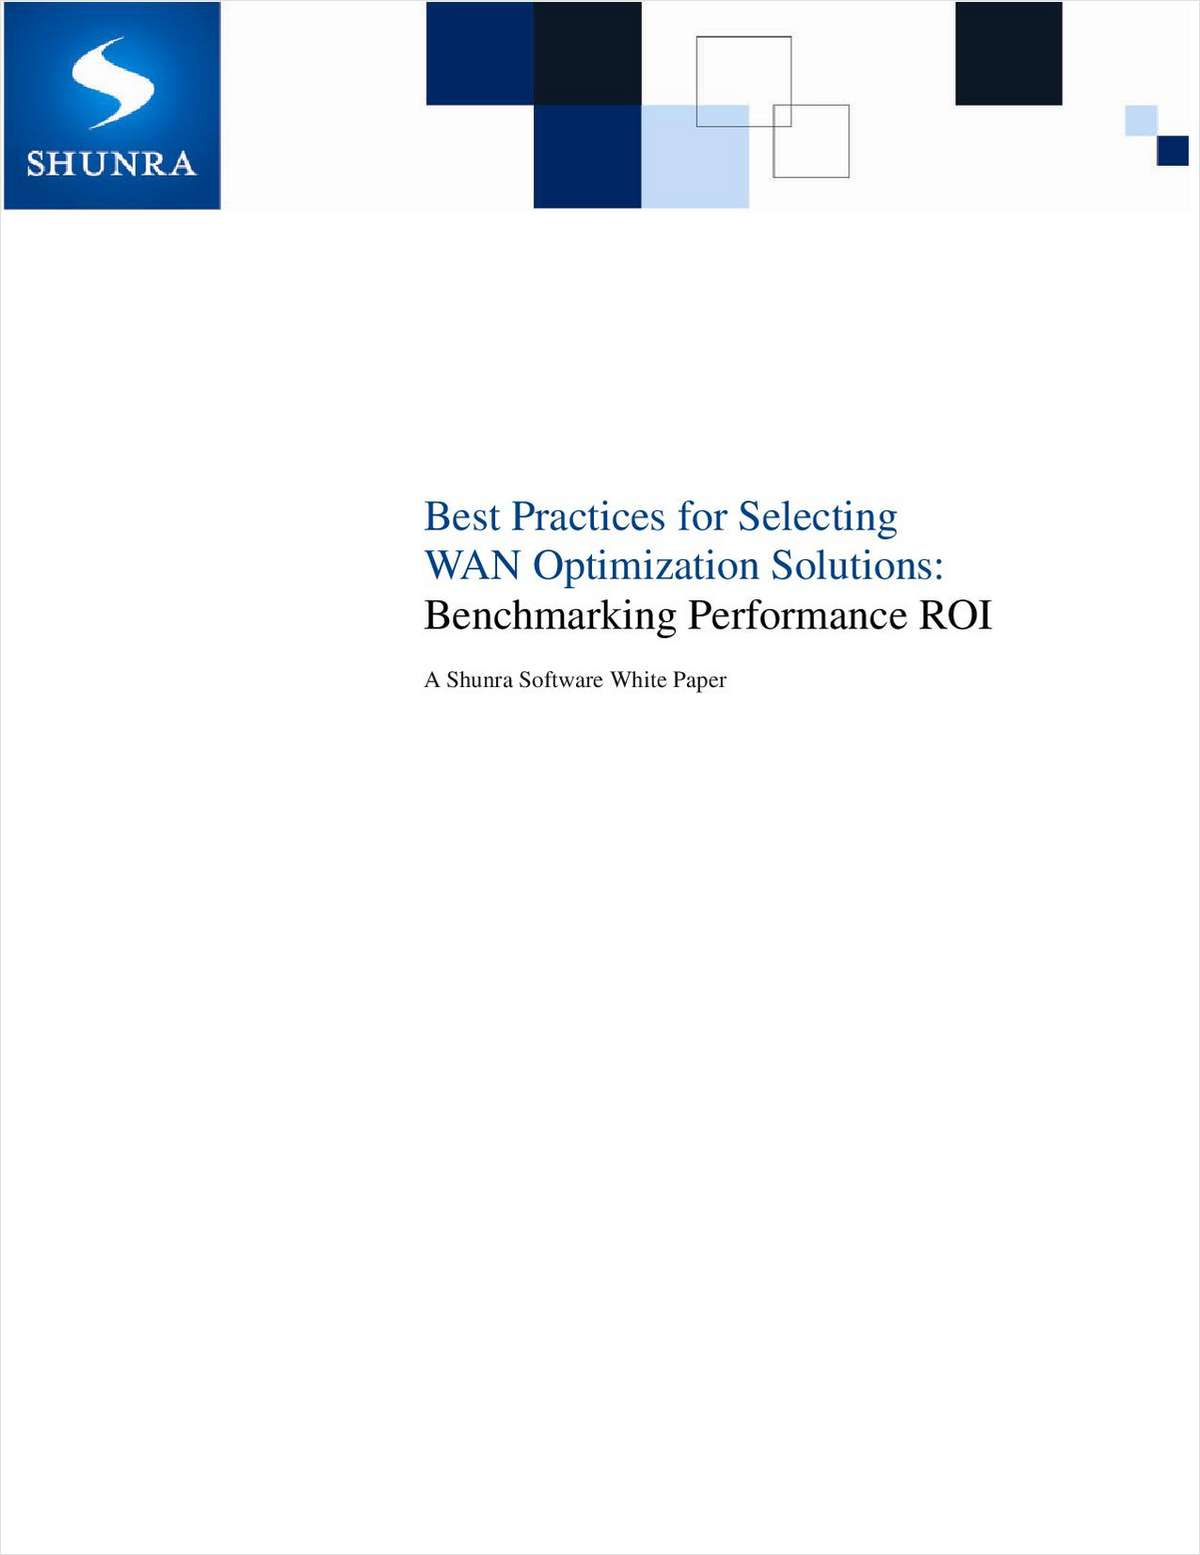 Best Practices for Selecting WAN Optimization Solutions: Benchmarking Performance ROI